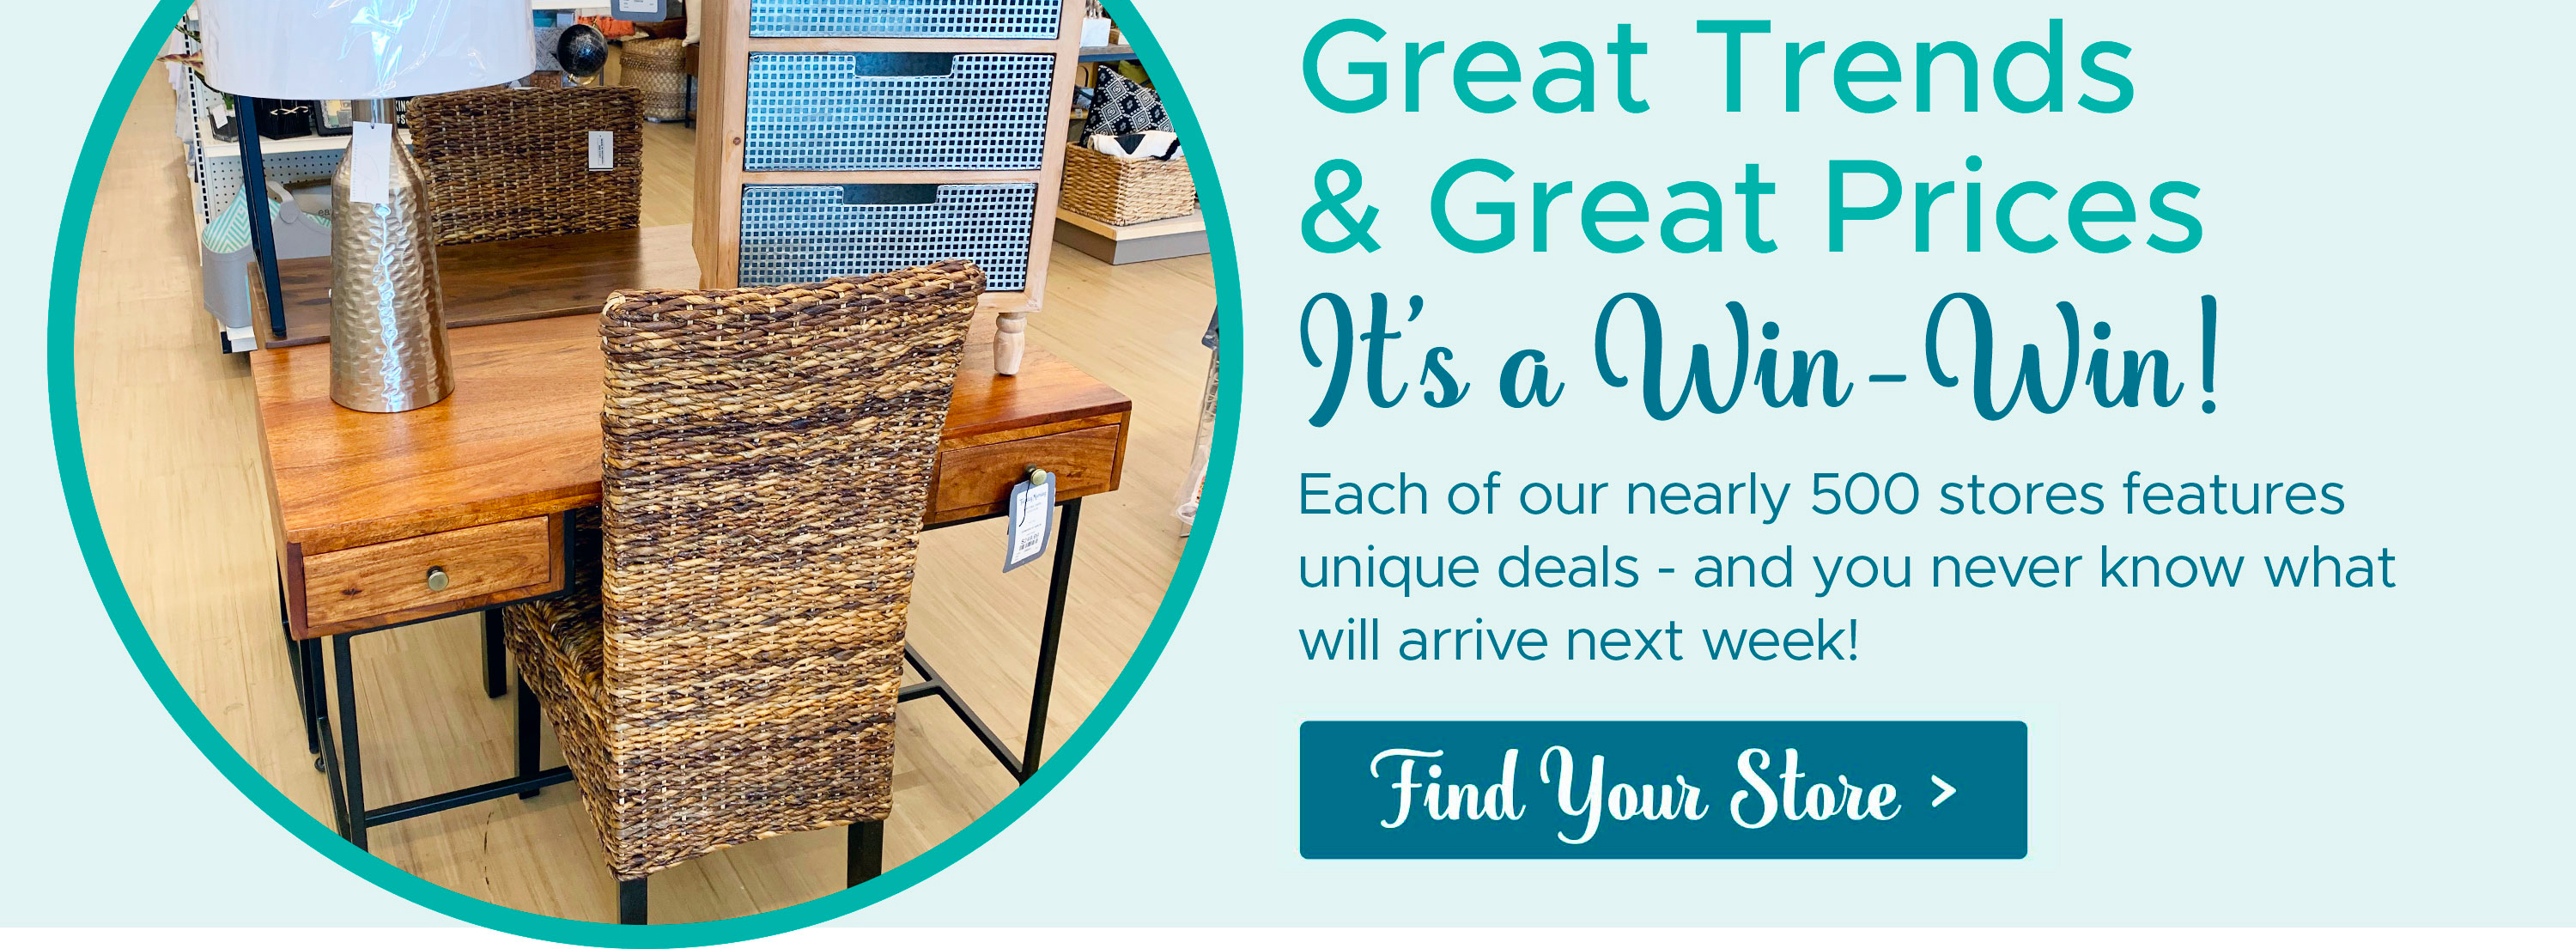 Great Trends & Great Prices - Find Your Store >